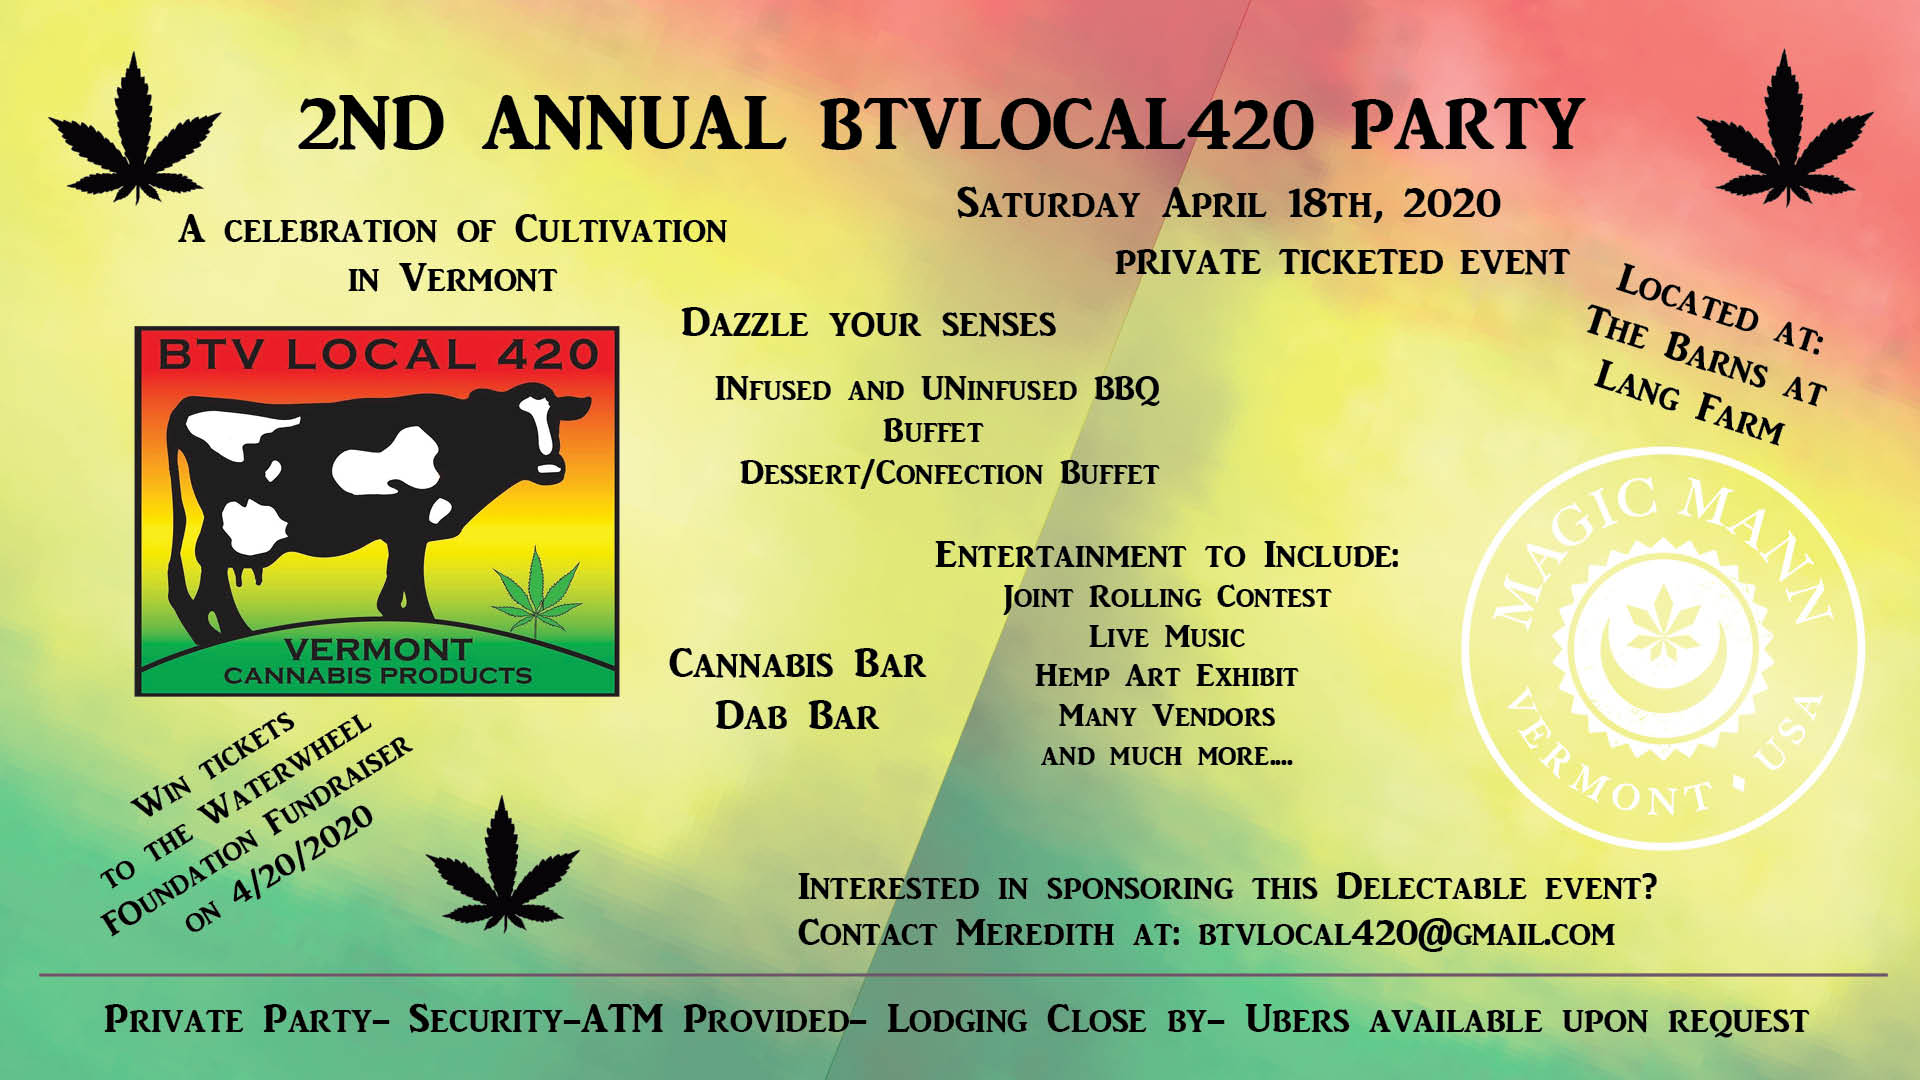 2nd Annual BTVLocal420 4/20 Party; A Celebration of Vermont Hemp Cultivation and Art